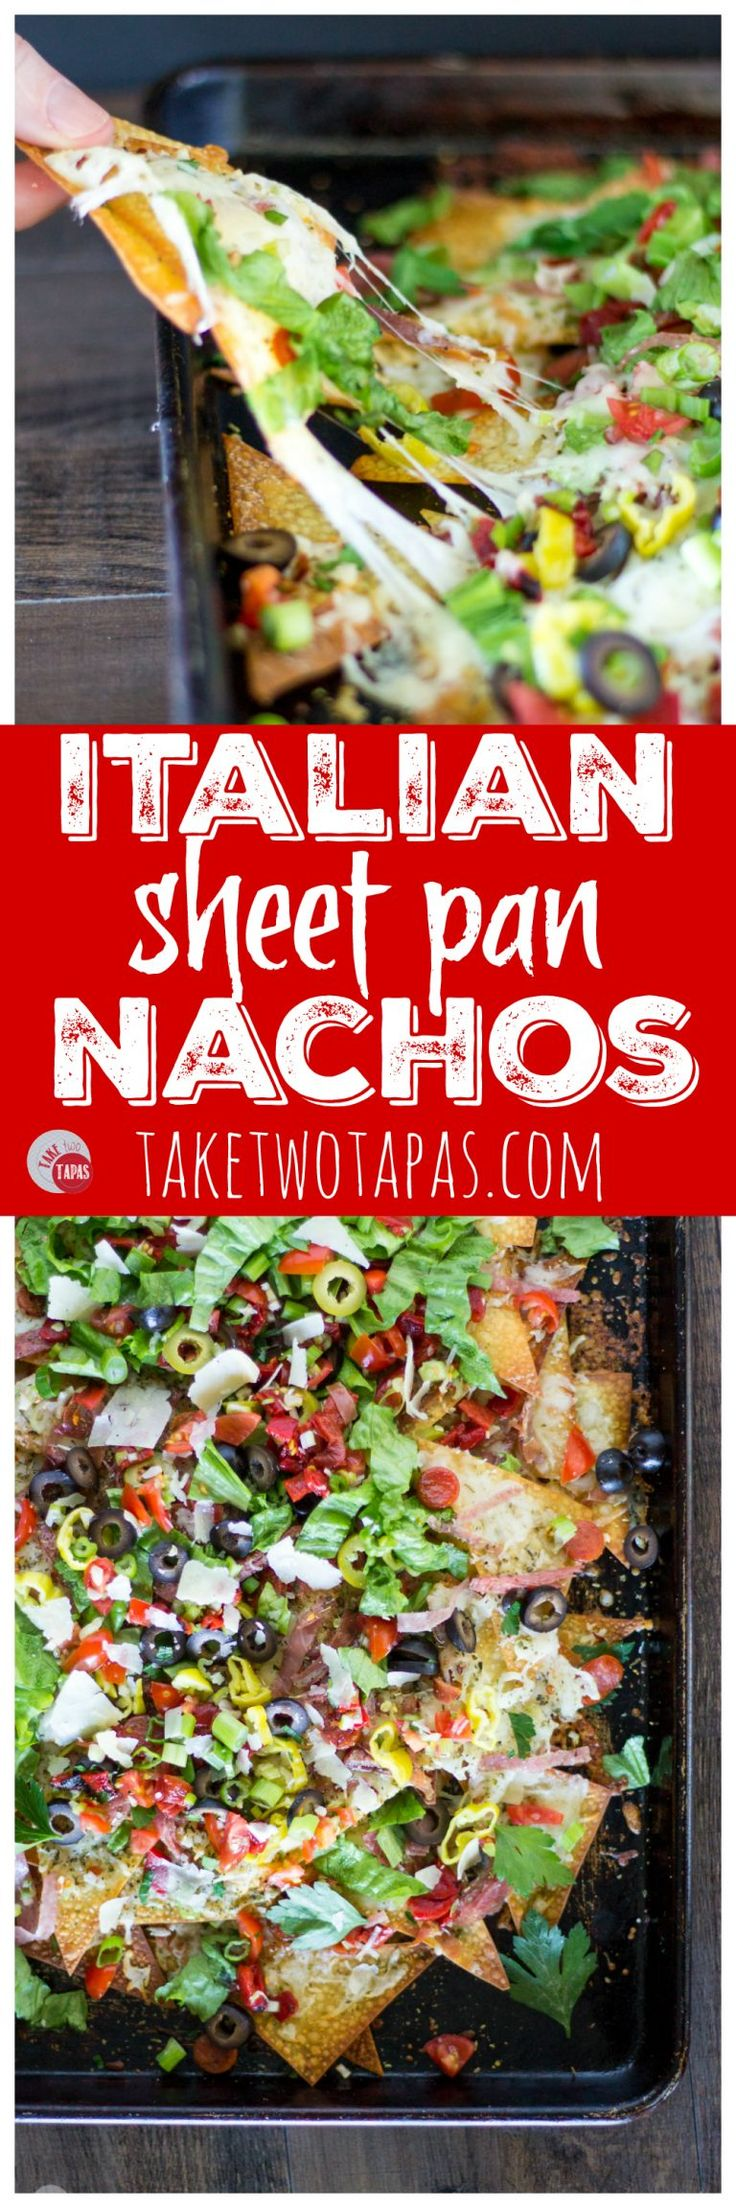 Your favorite Italian Sub Sandwich has been transformed into nachos! Wonton chips hold your favorite toppings like salami, pepperoni, prosciutto, and cheese for a sandwich you can eat like nachos and share with your friends. Italian Sheet Pan Nachos Recipe | Take Two Tapas